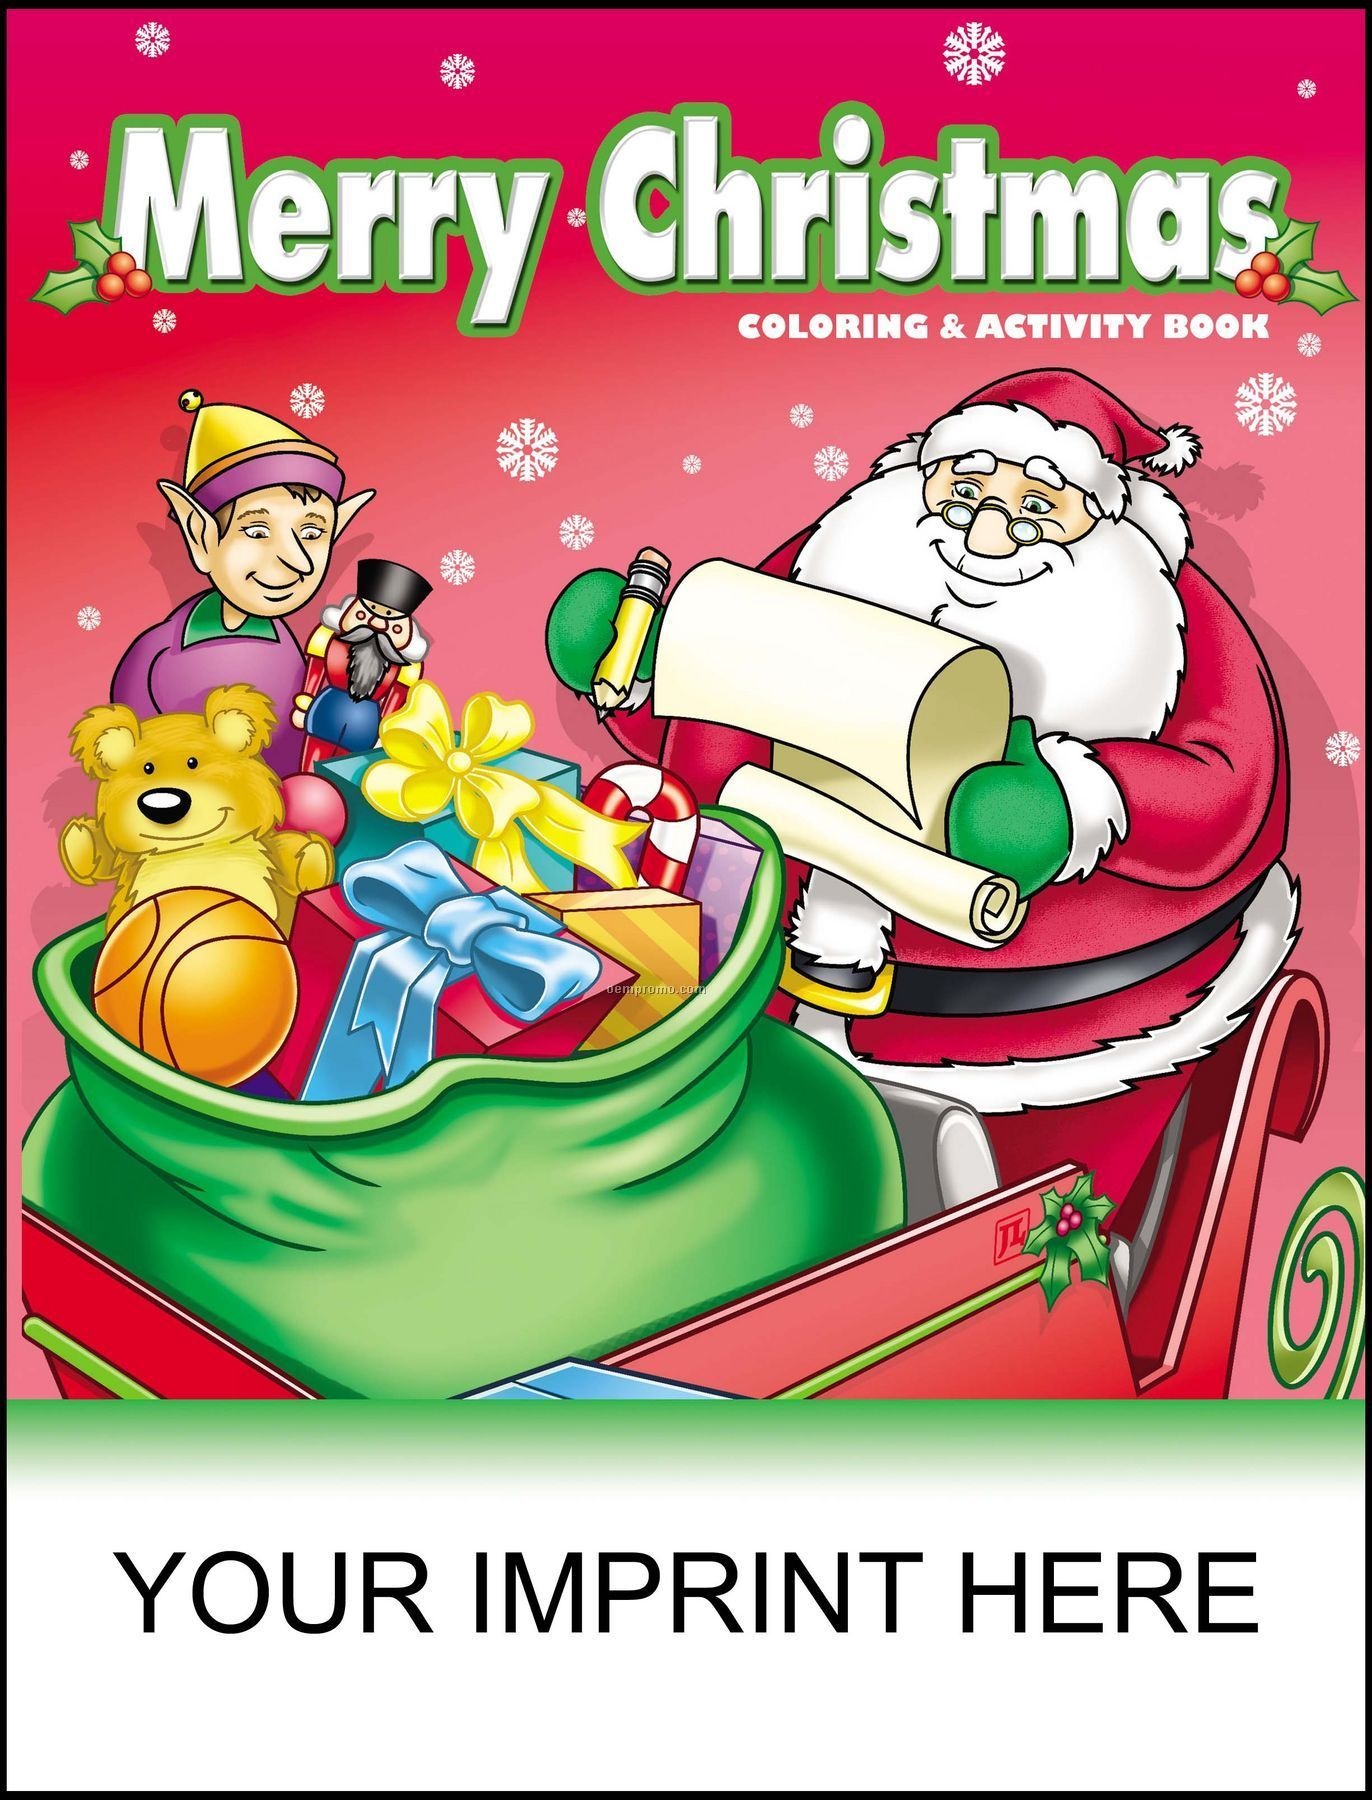 Merry Christmas Coloring Activity Book